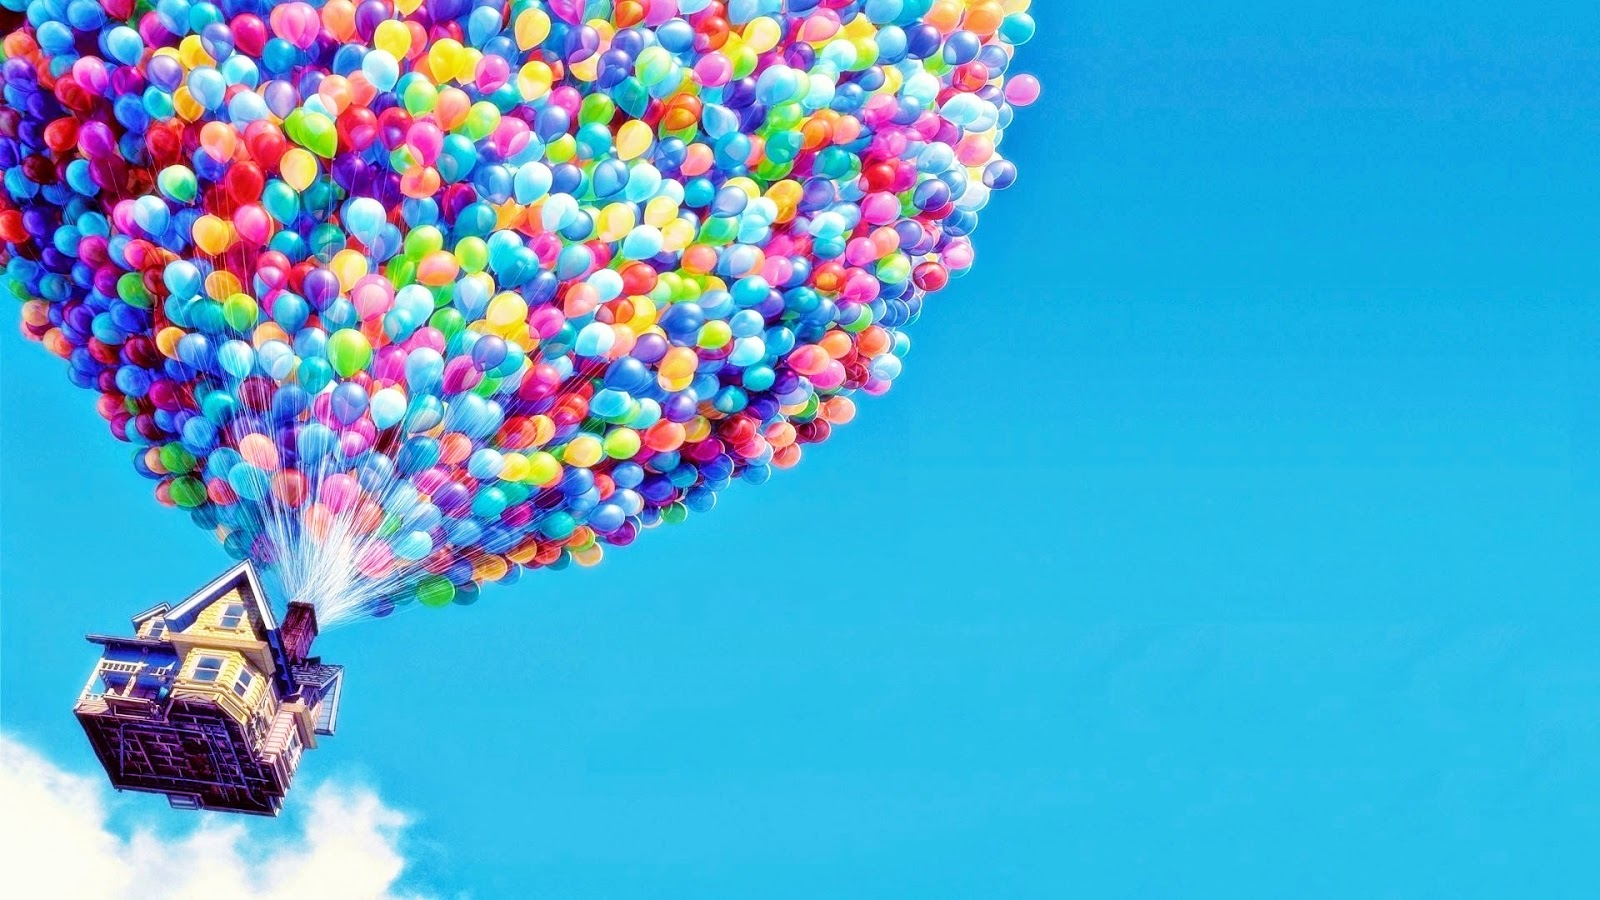 Up House Balloons Thinking Thoughts June 2014